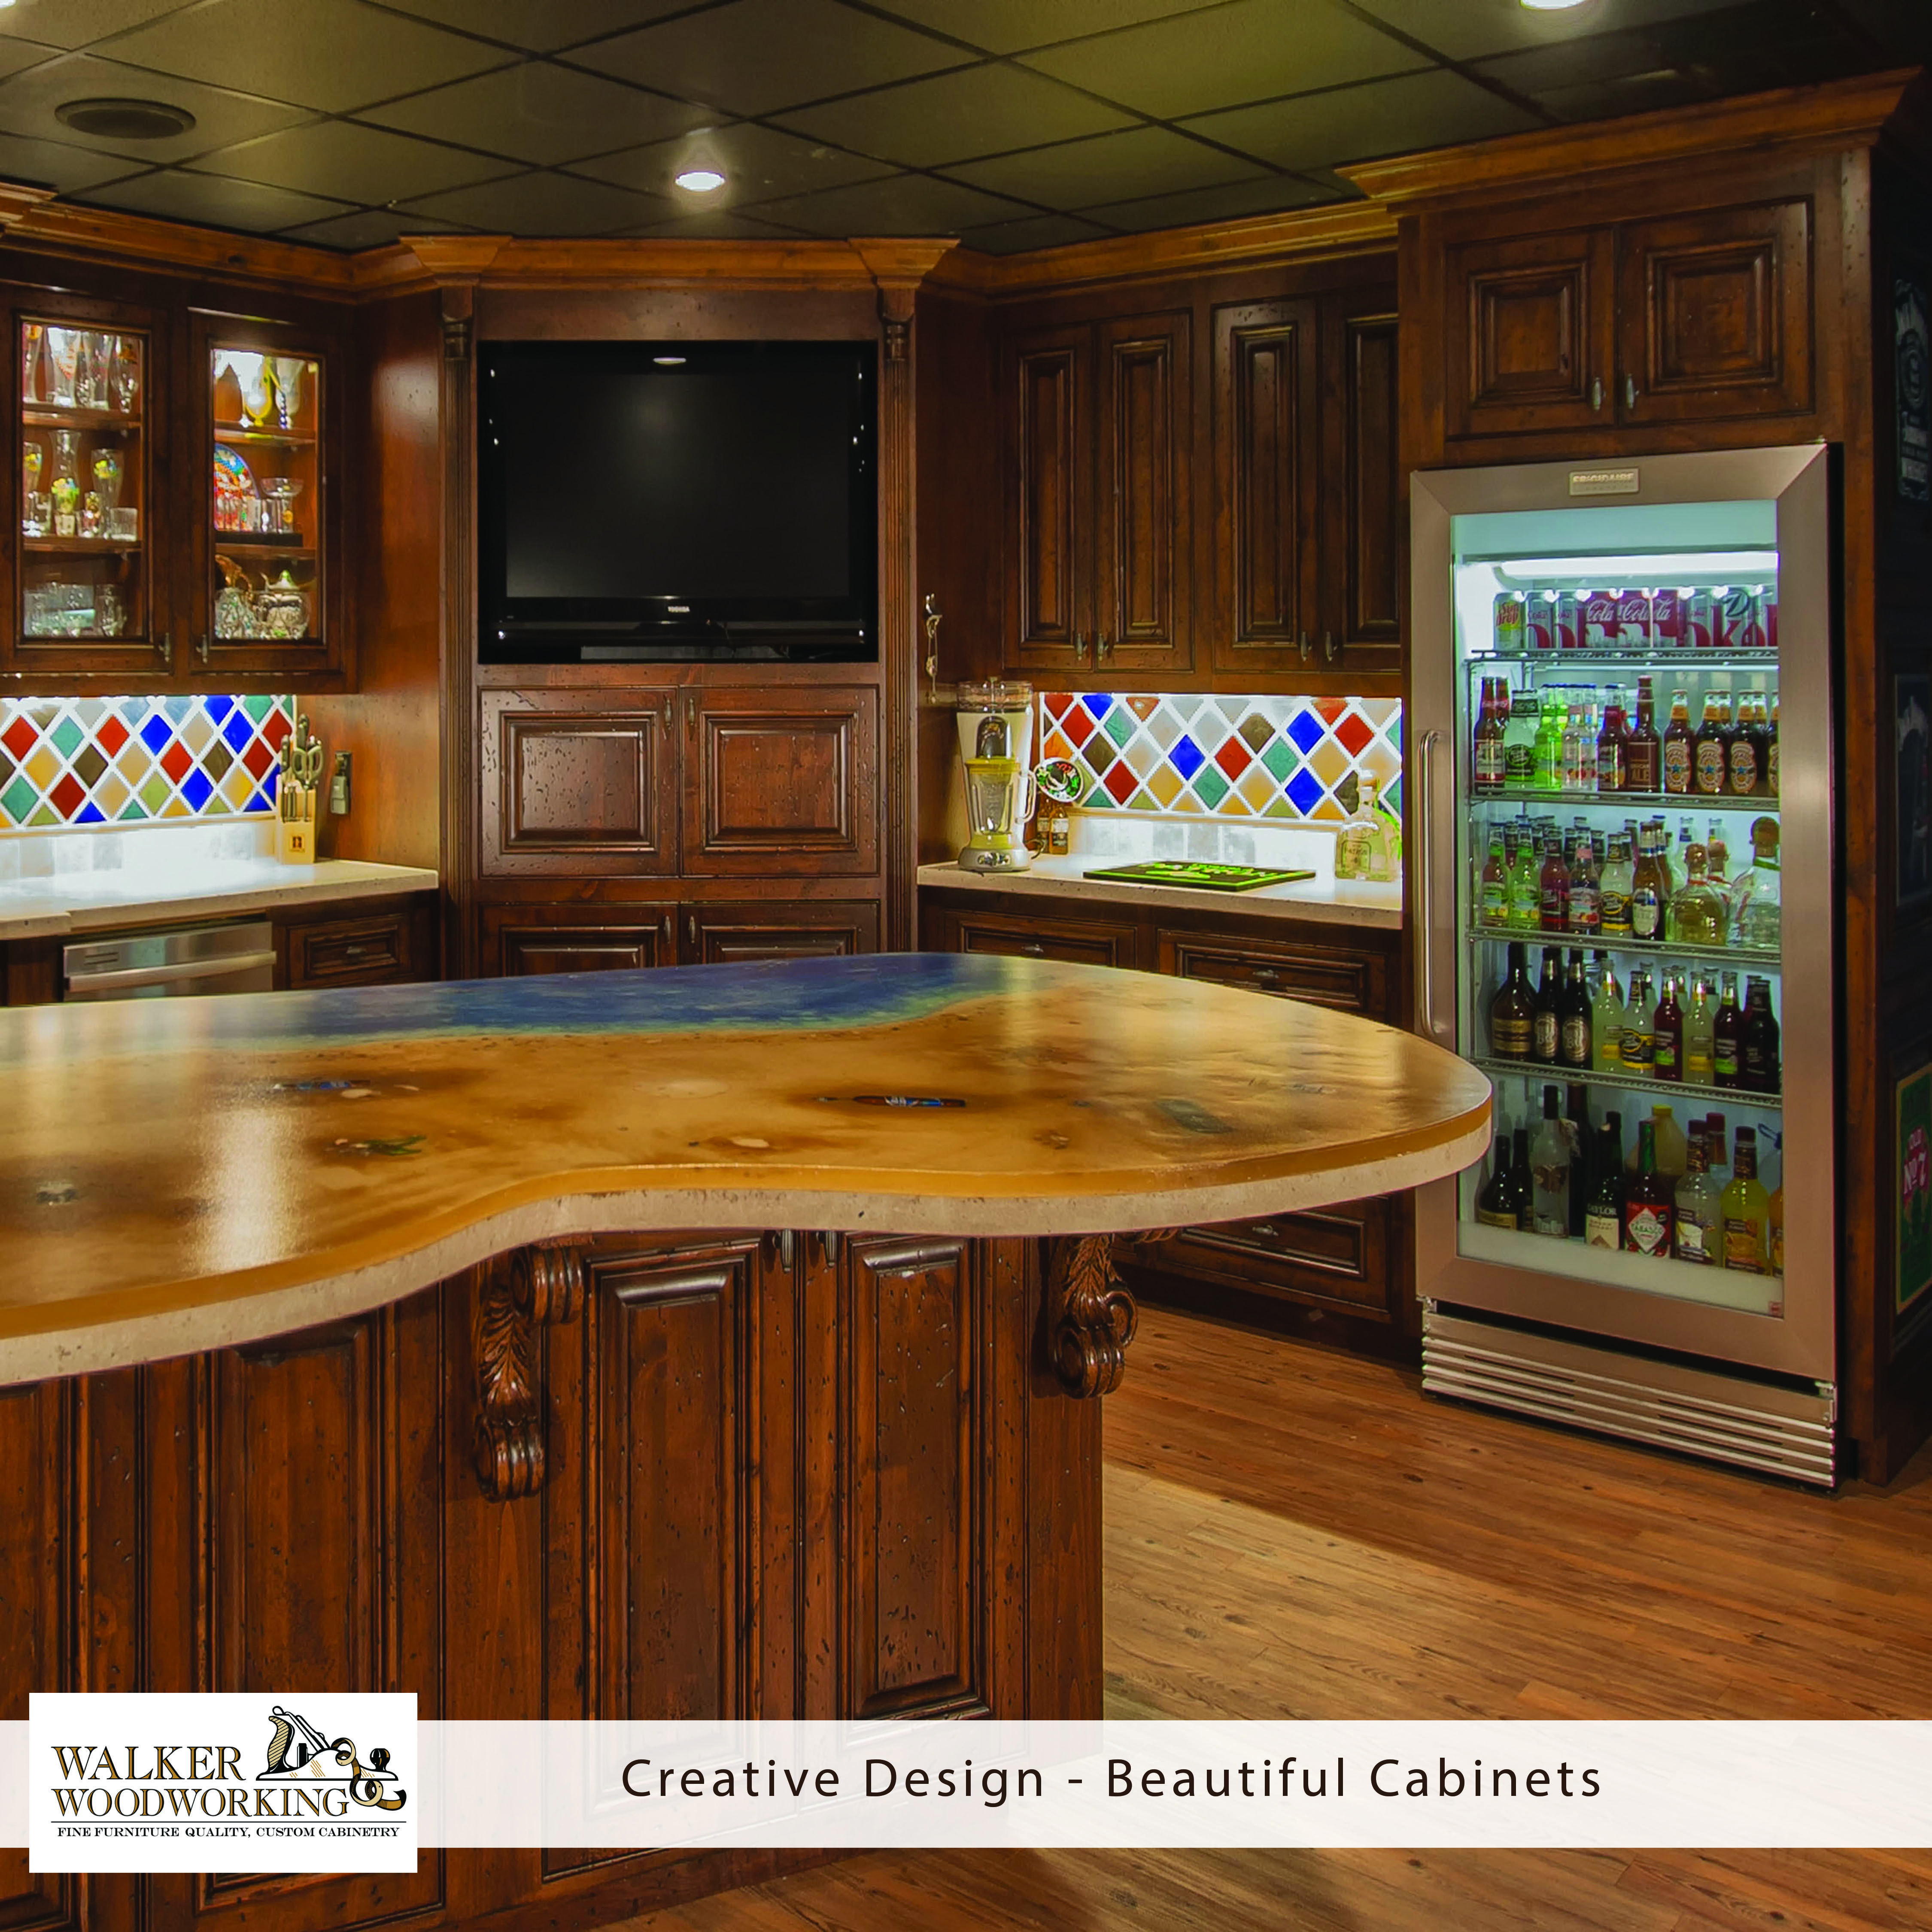 National Beer Day is observed annually on April 7th. #nationalbeerday Cold beverages are just as important as the place to store them! Beverage Centers are very popular in today's design.    #walkerwoodworking #beautifulcabinets #shelbync #charlotte #asheville #designinspiration  #Greenbrookdesign #uptownshelby  #newgrassbrewery #nationalbeerday   #shelbync #shoplocal